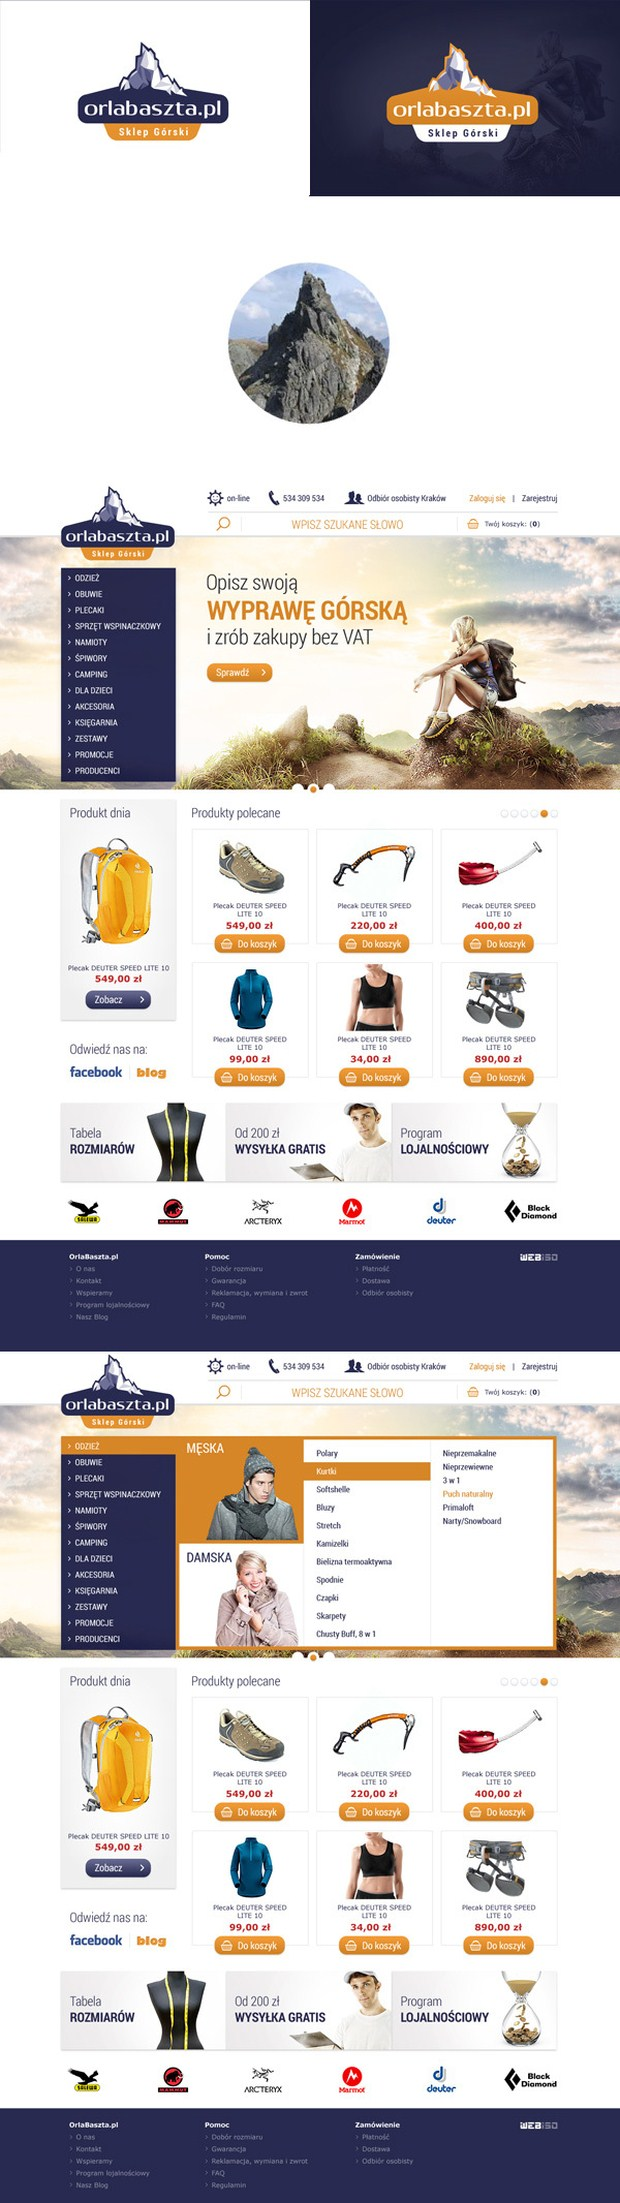 Orlabaszta online shop Web Design